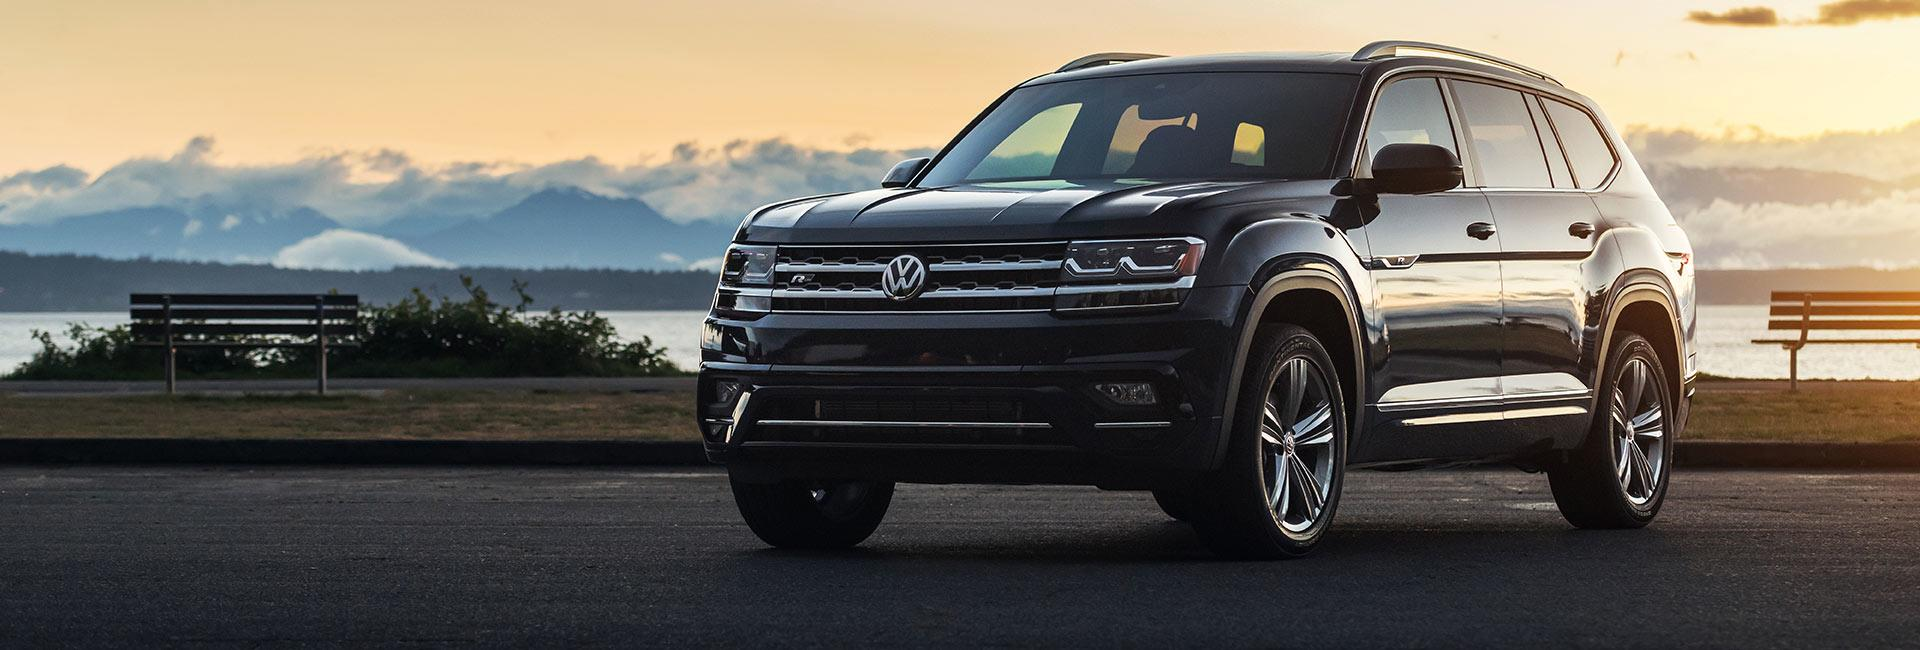 Exterior image of the 2020 VW Atlas in Amherst Ohio